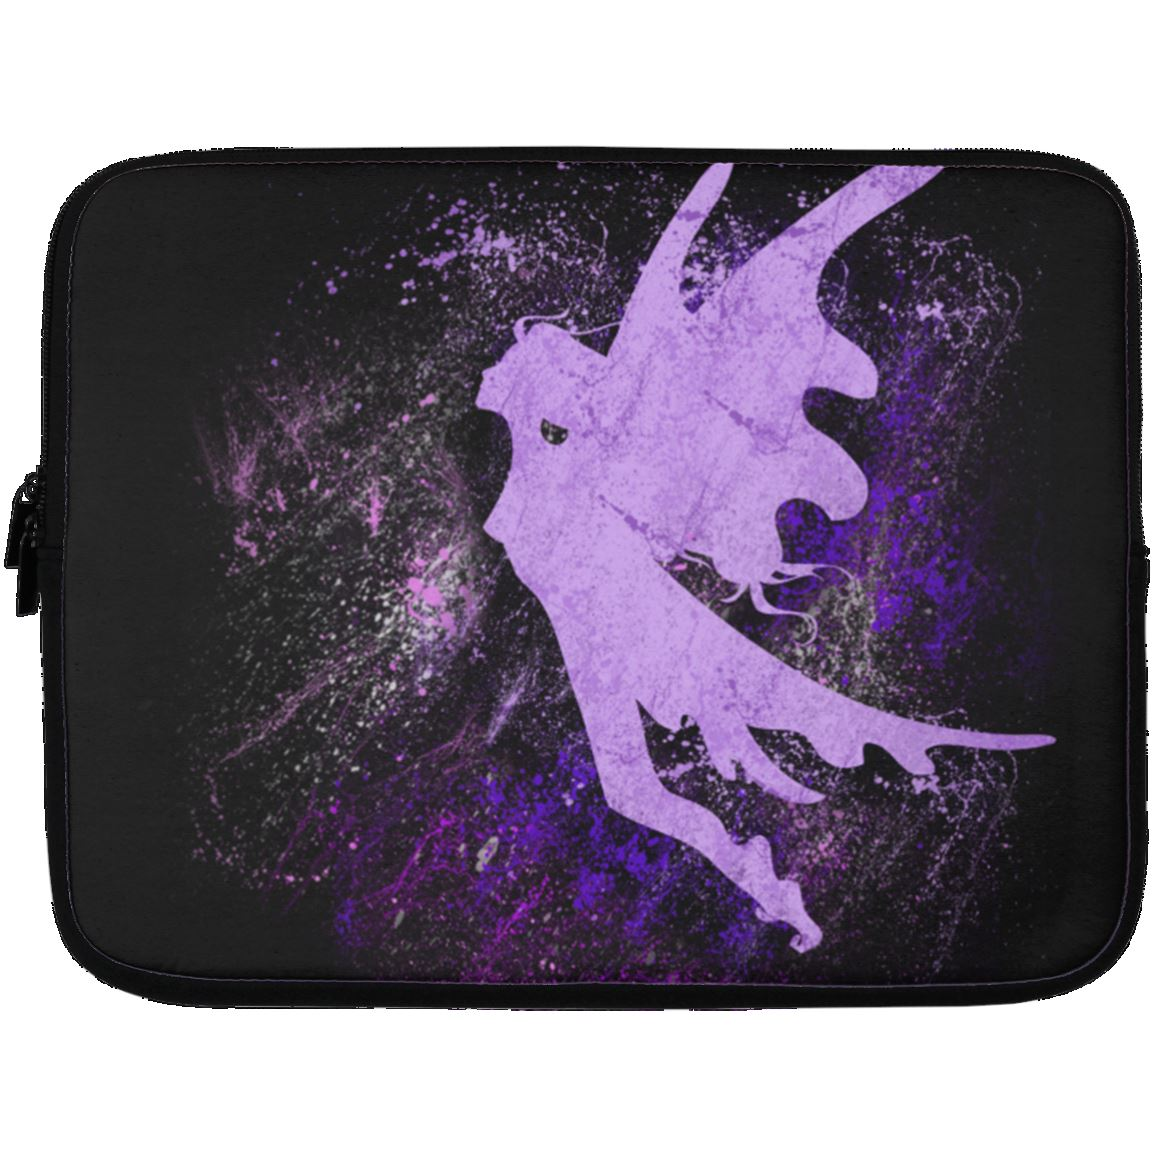 Fairy Splash Laptop Sleeve Apparel Laptop Sleeve - 13 inch Black One Size